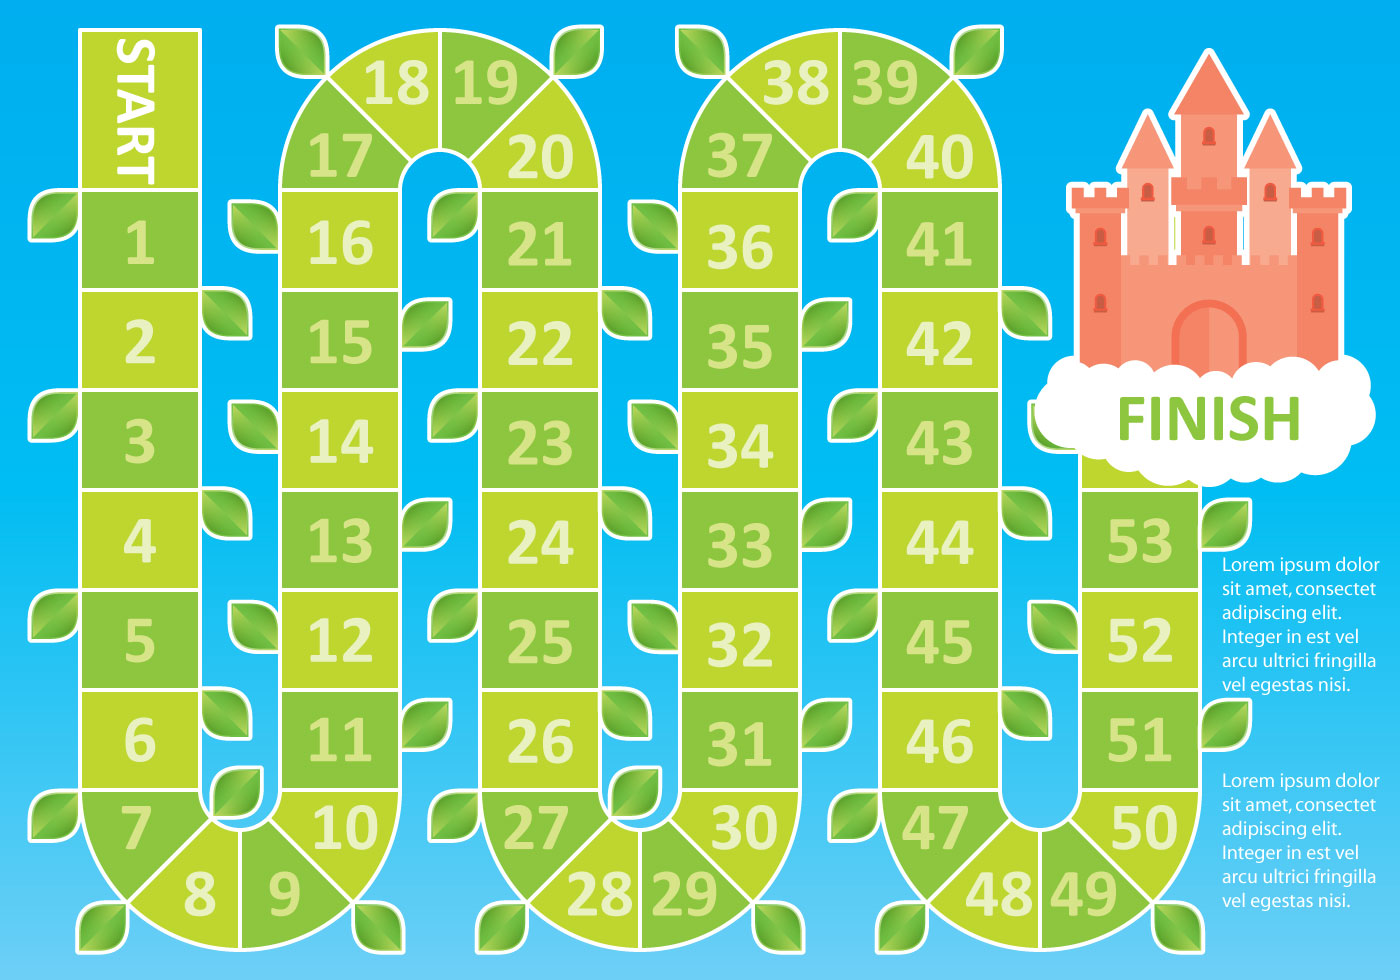 beanstalk board game download free vector art  stock clip art snacks clip art snakes and scorpions